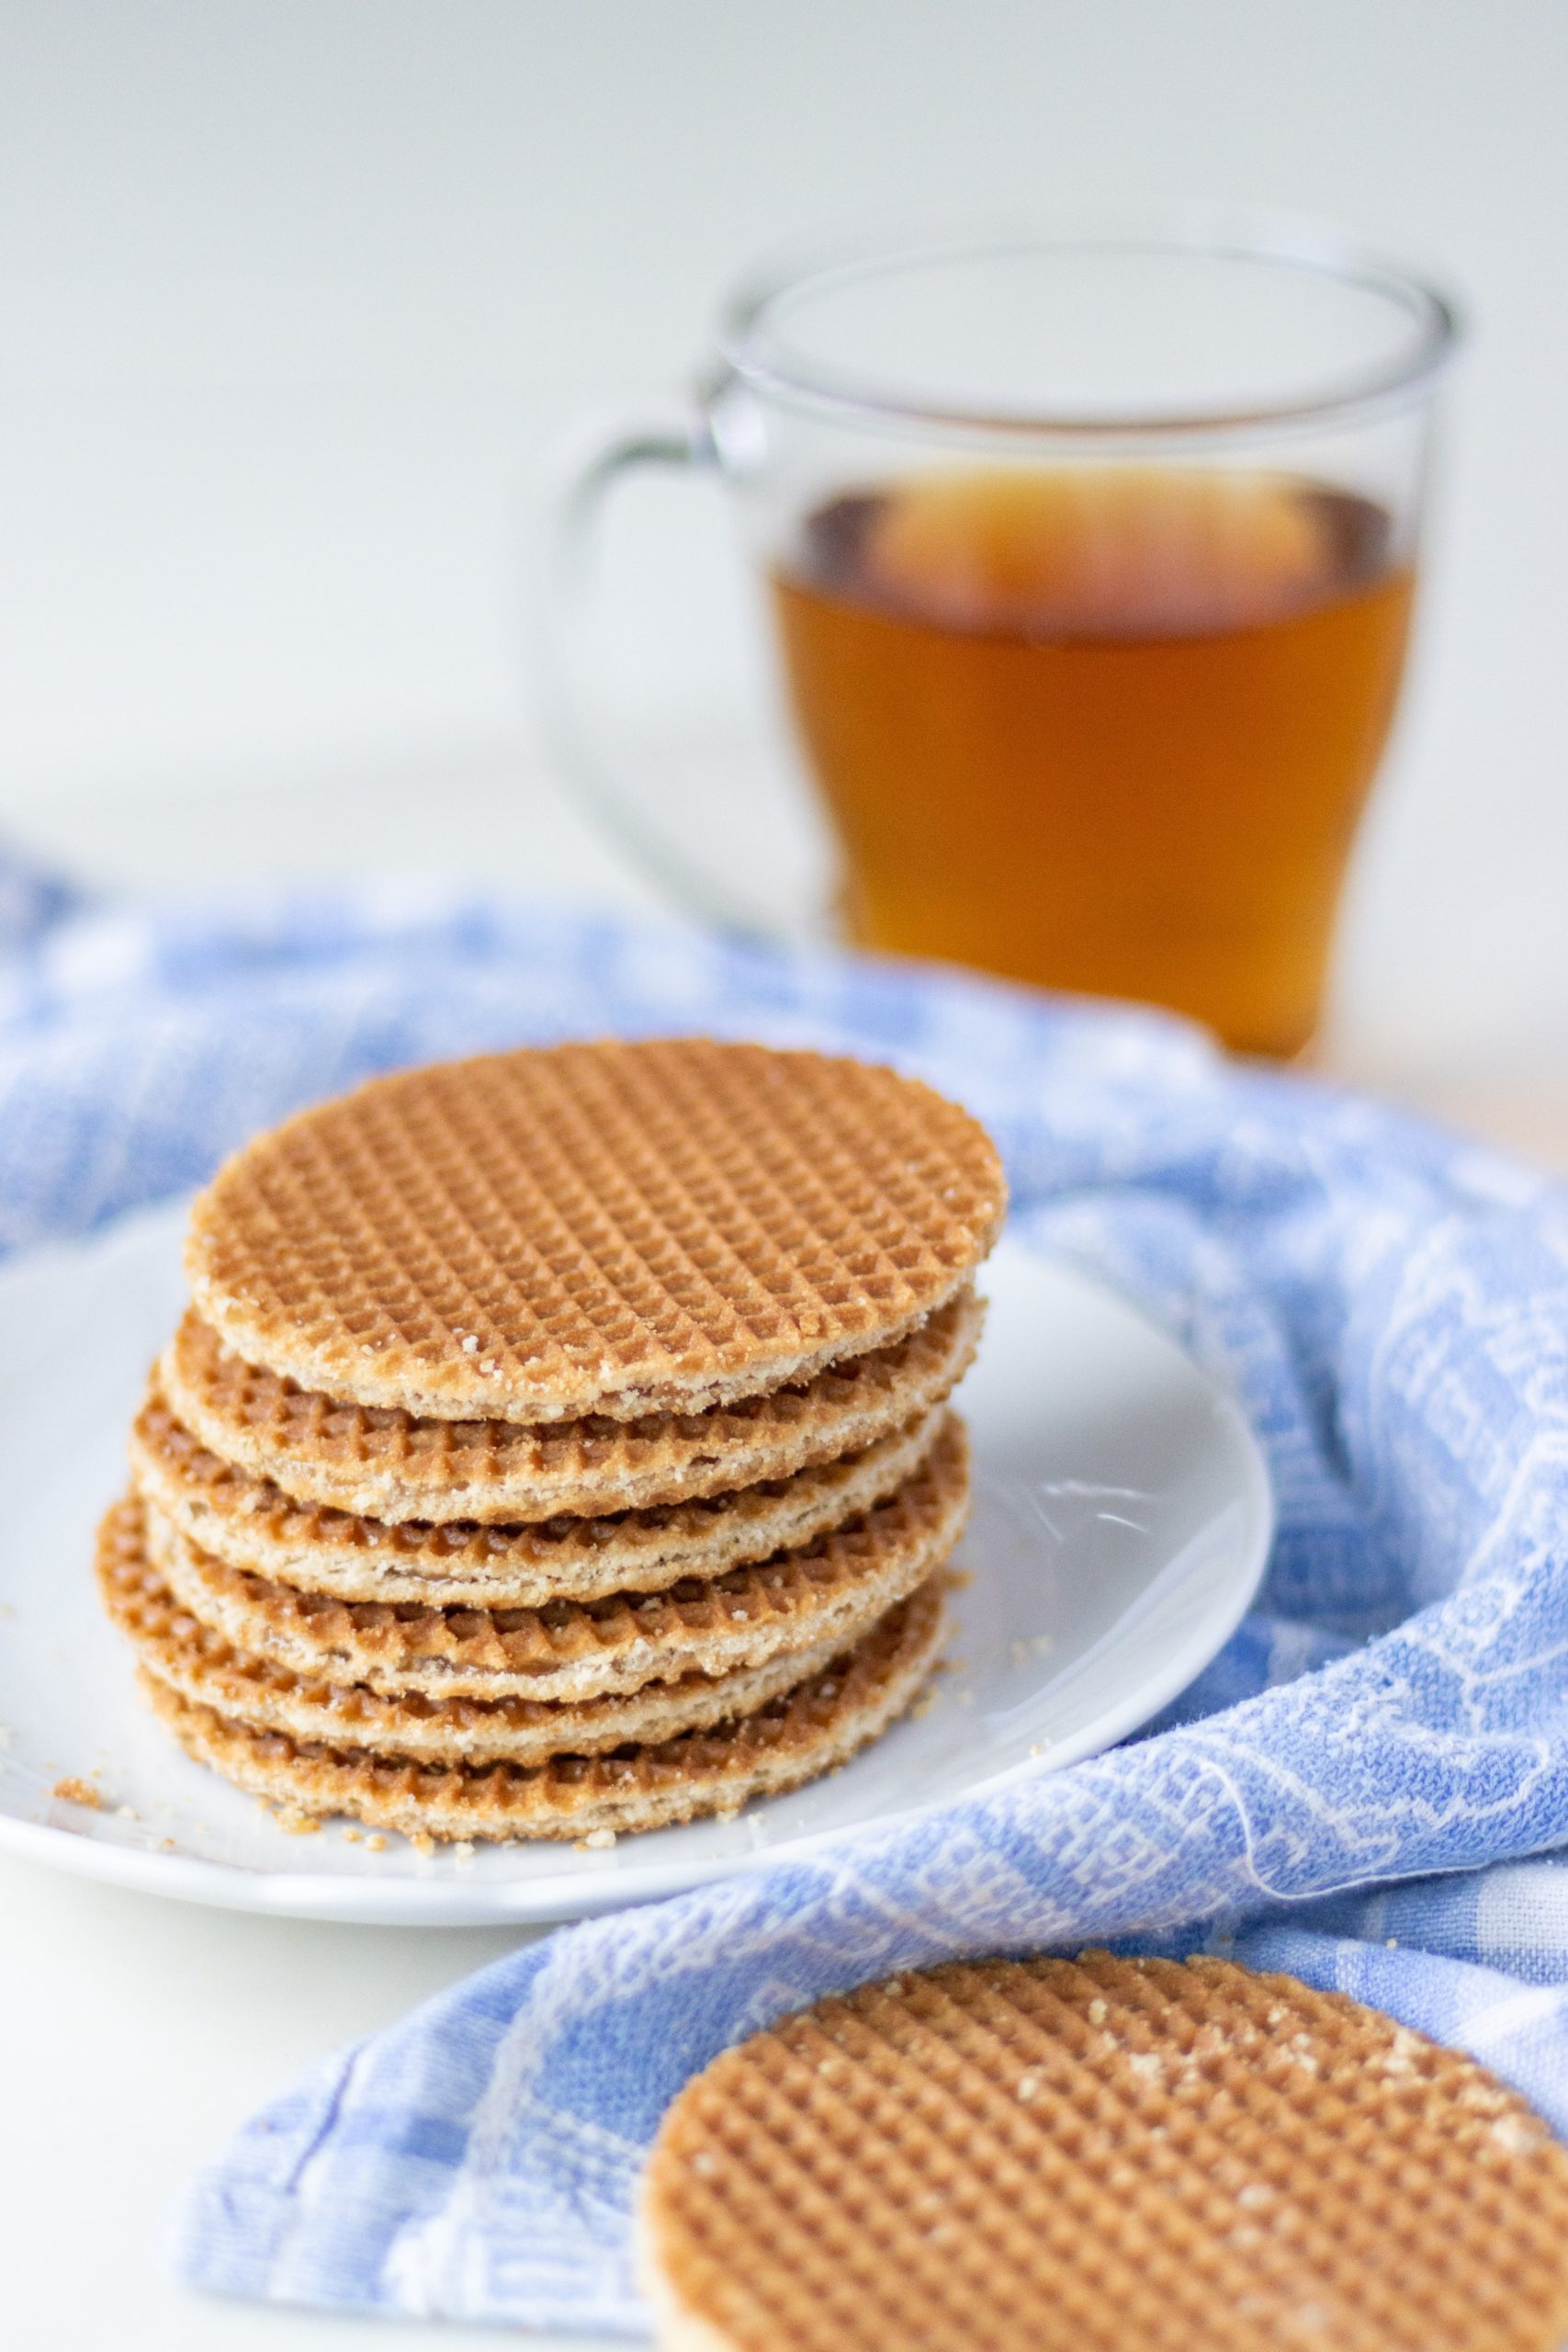 Book wednesday || De stroopwafelshop – Astrid Harrewijn